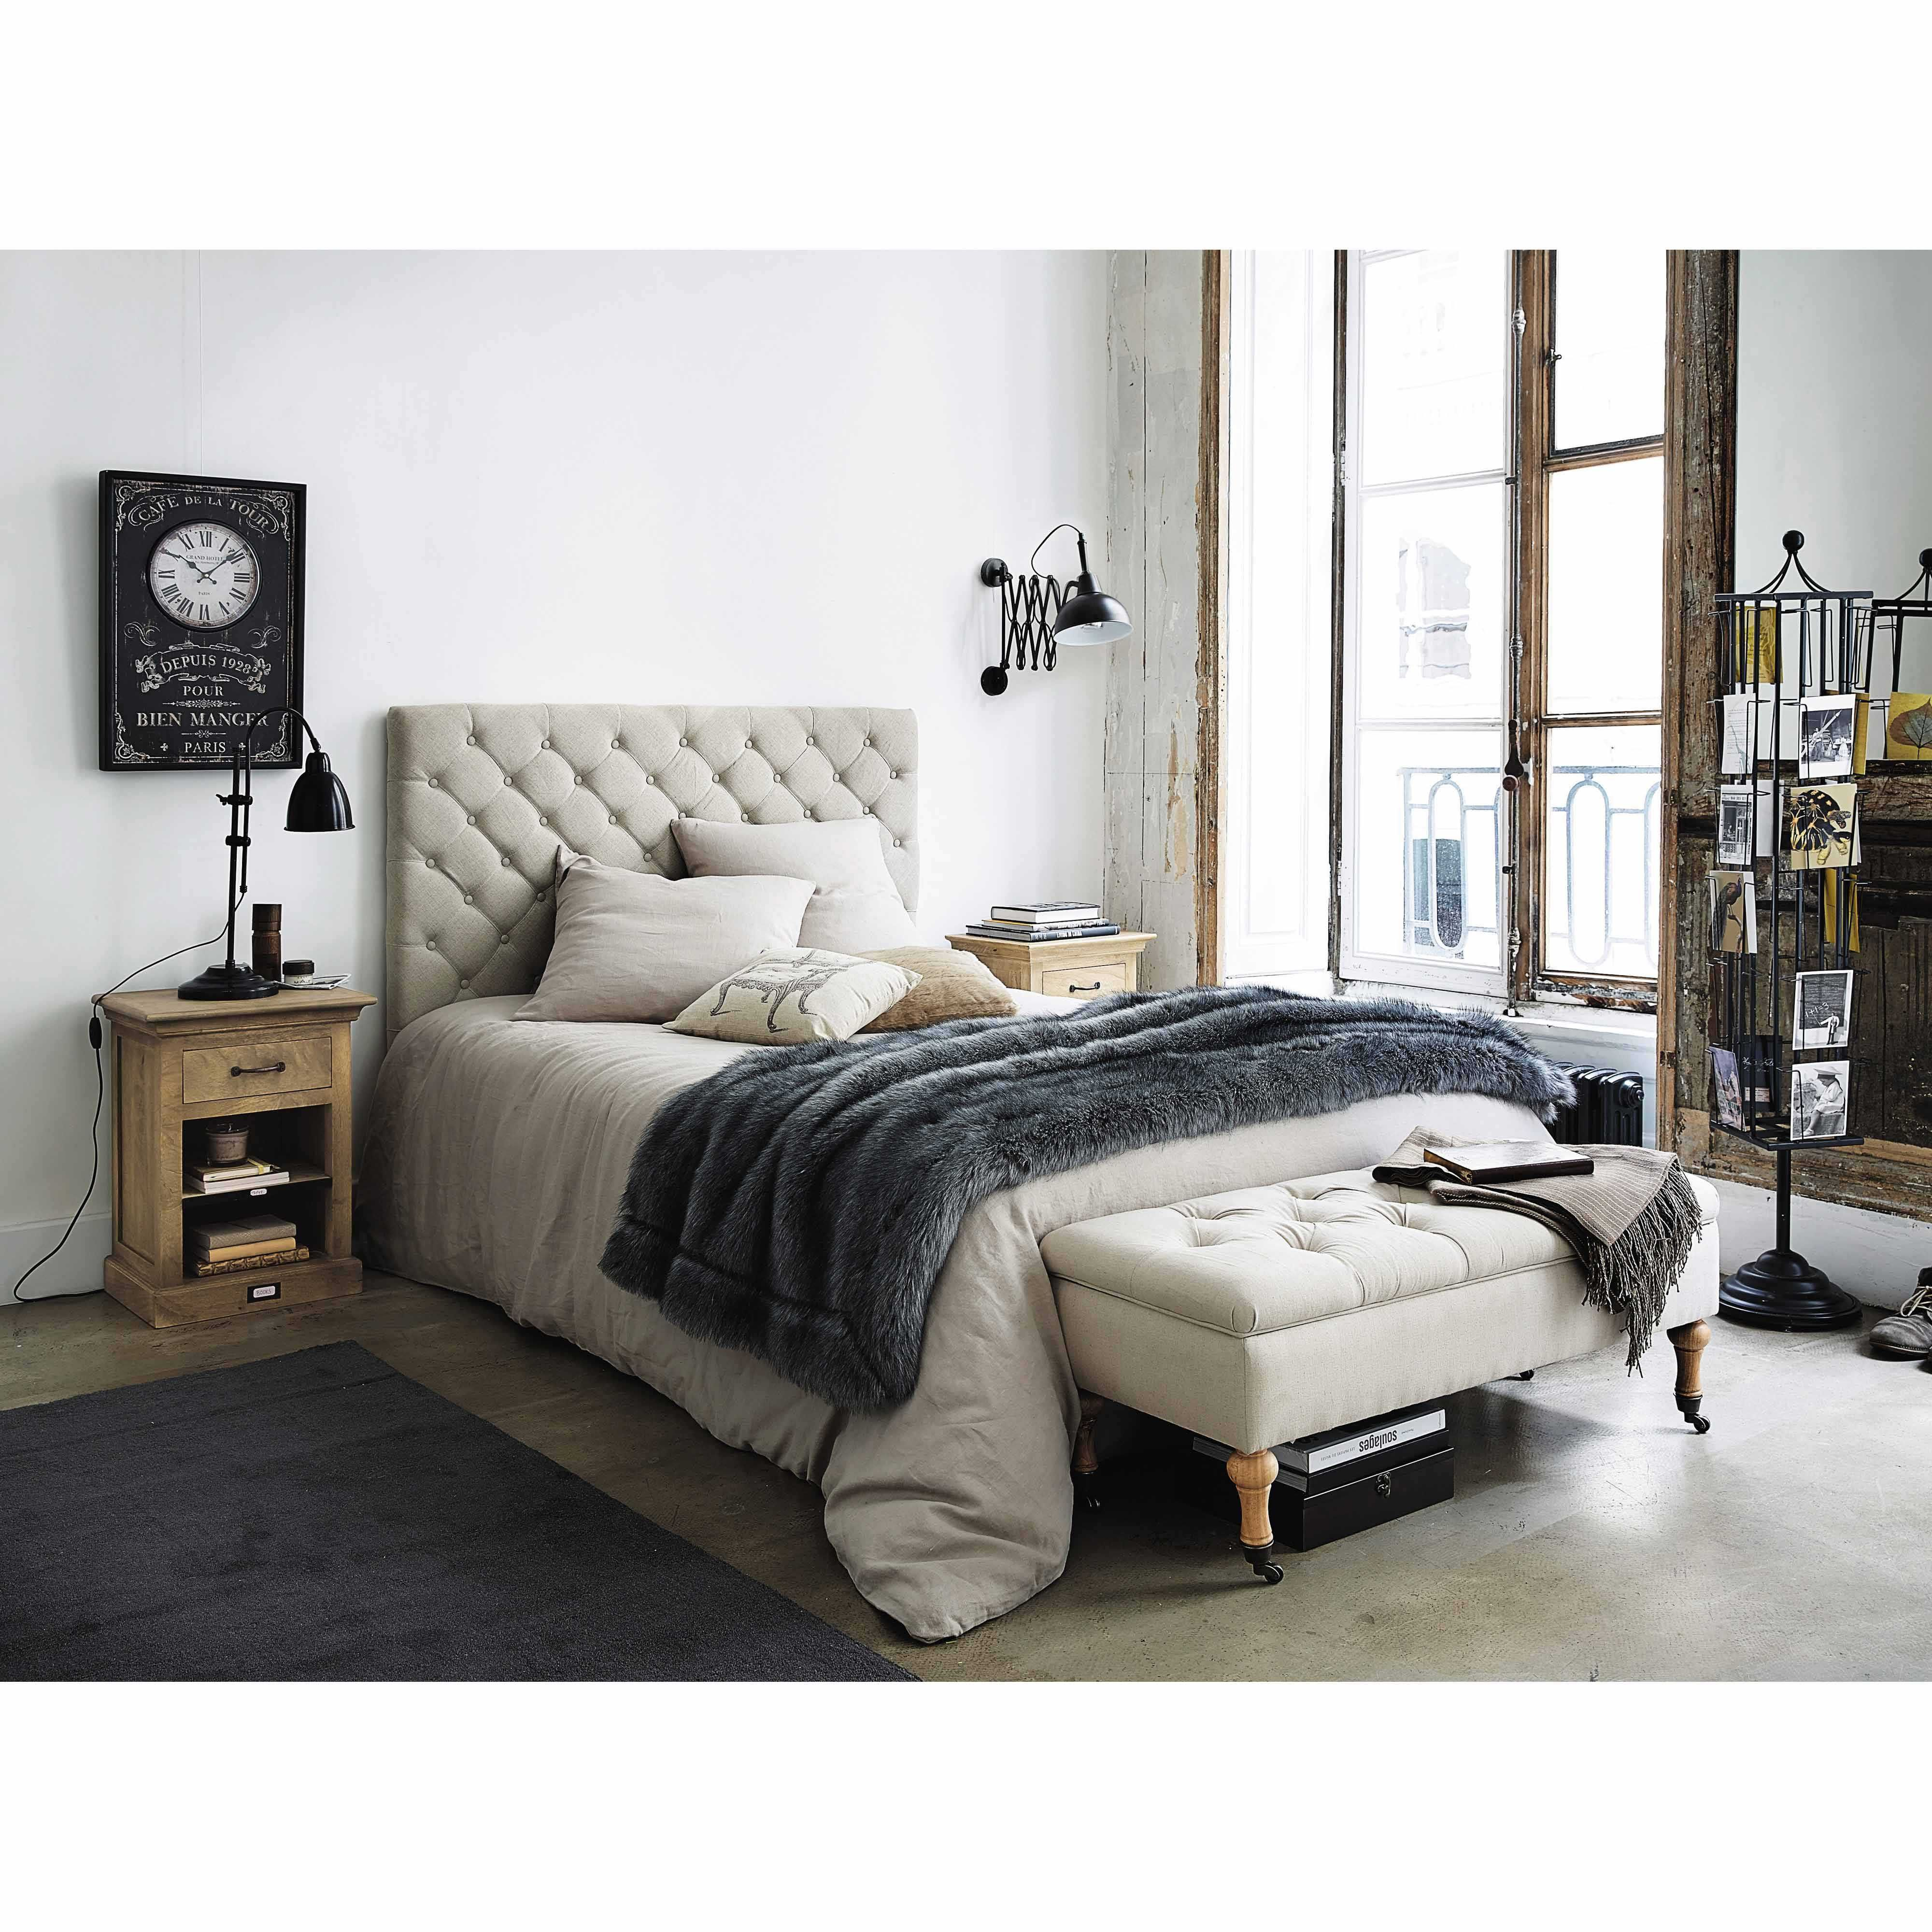 t te de lit capitonn e en lin l 140 cm t te de lit capitonn e lit capitonn et chesterfield. Black Bedroom Furniture Sets. Home Design Ideas